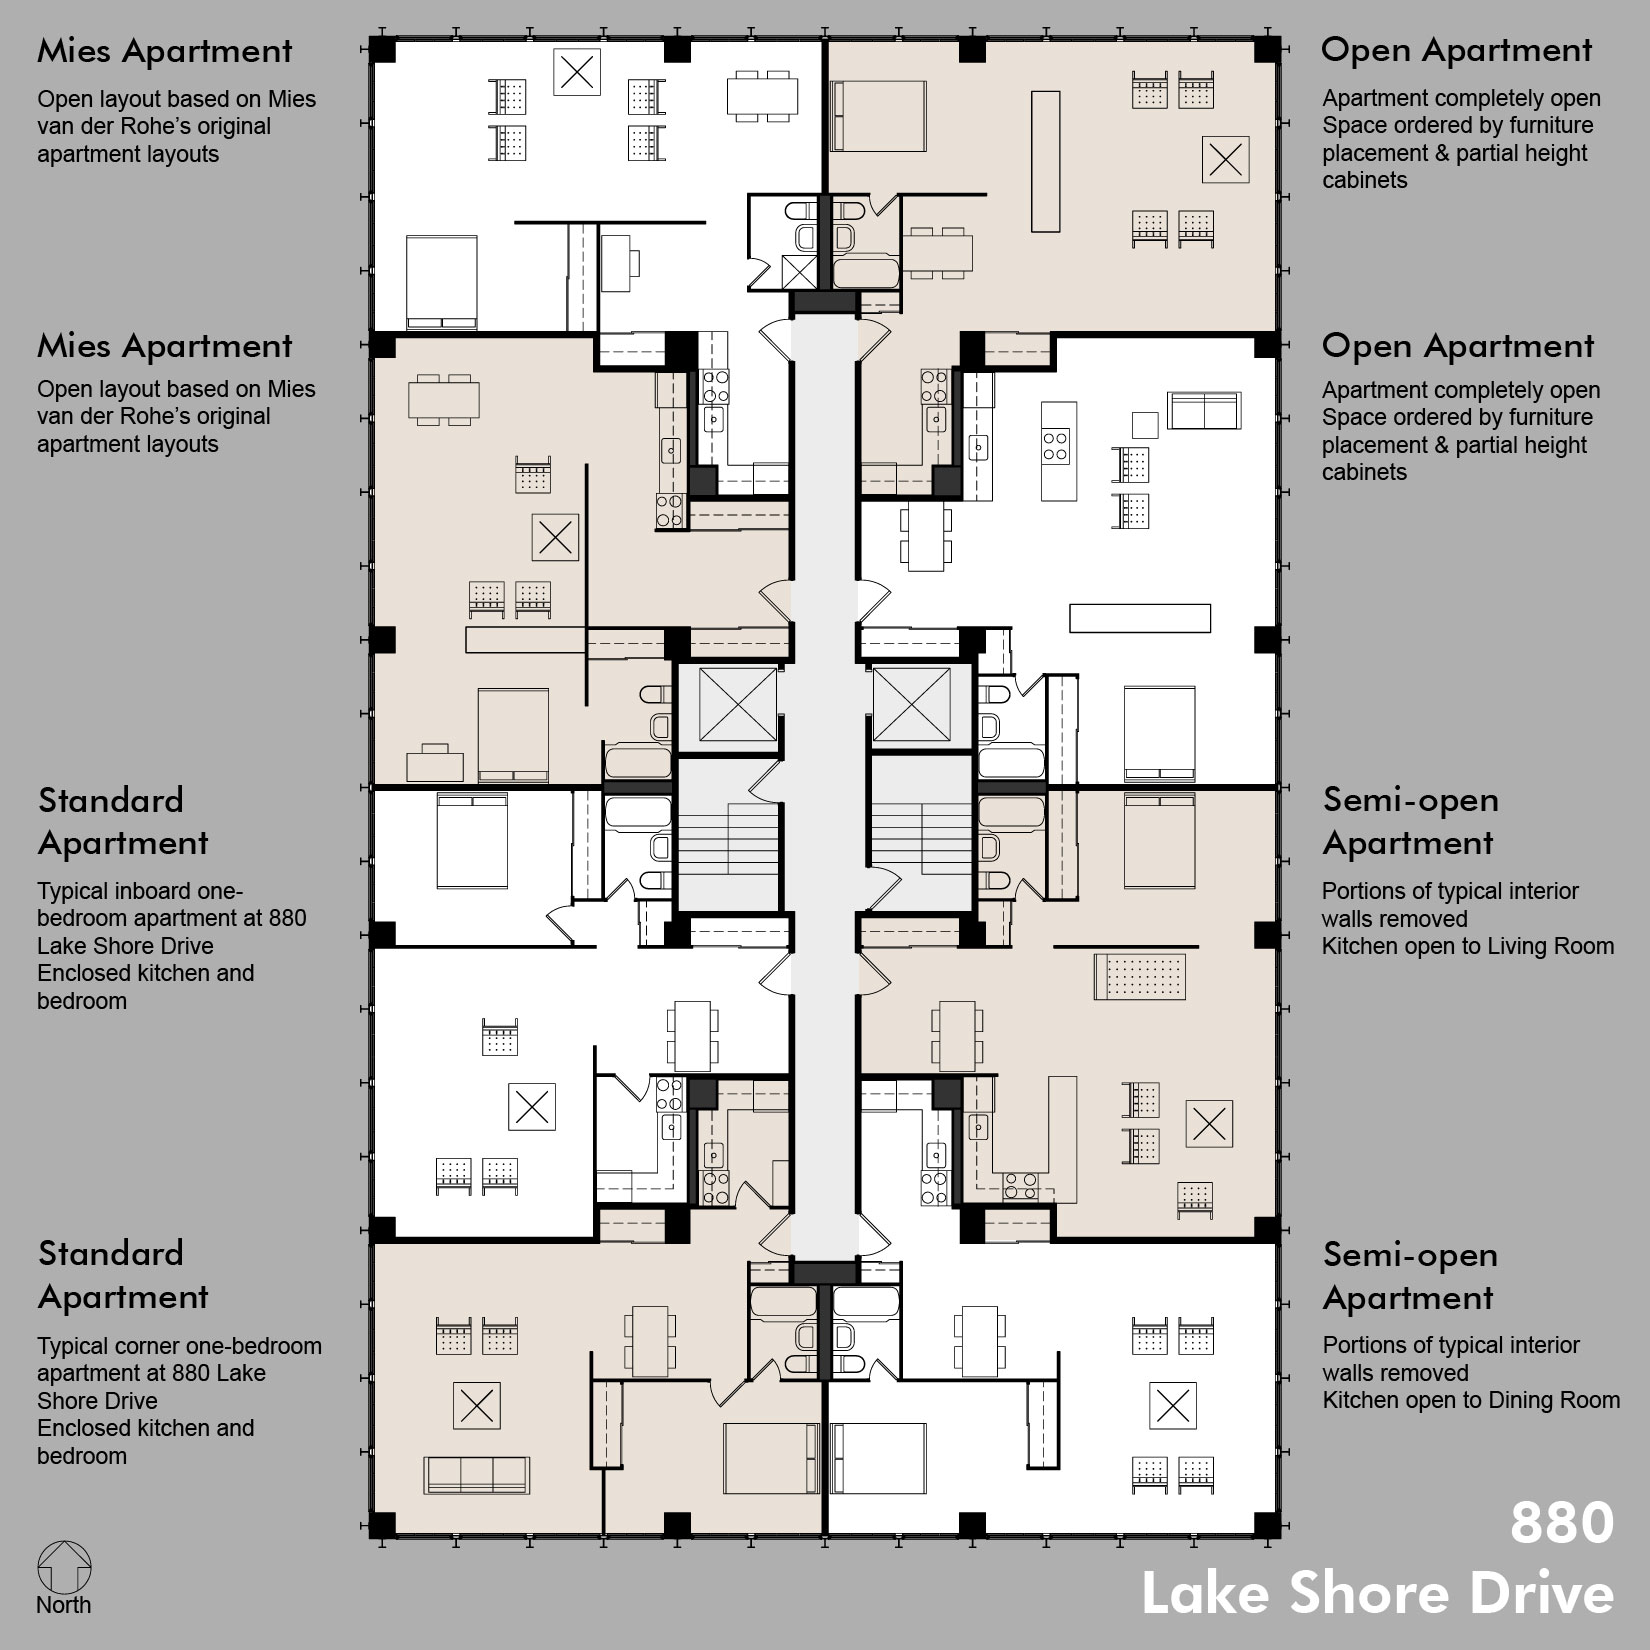 Apartment Building Architectural Plans 880_floor_plans_including_standard_apt